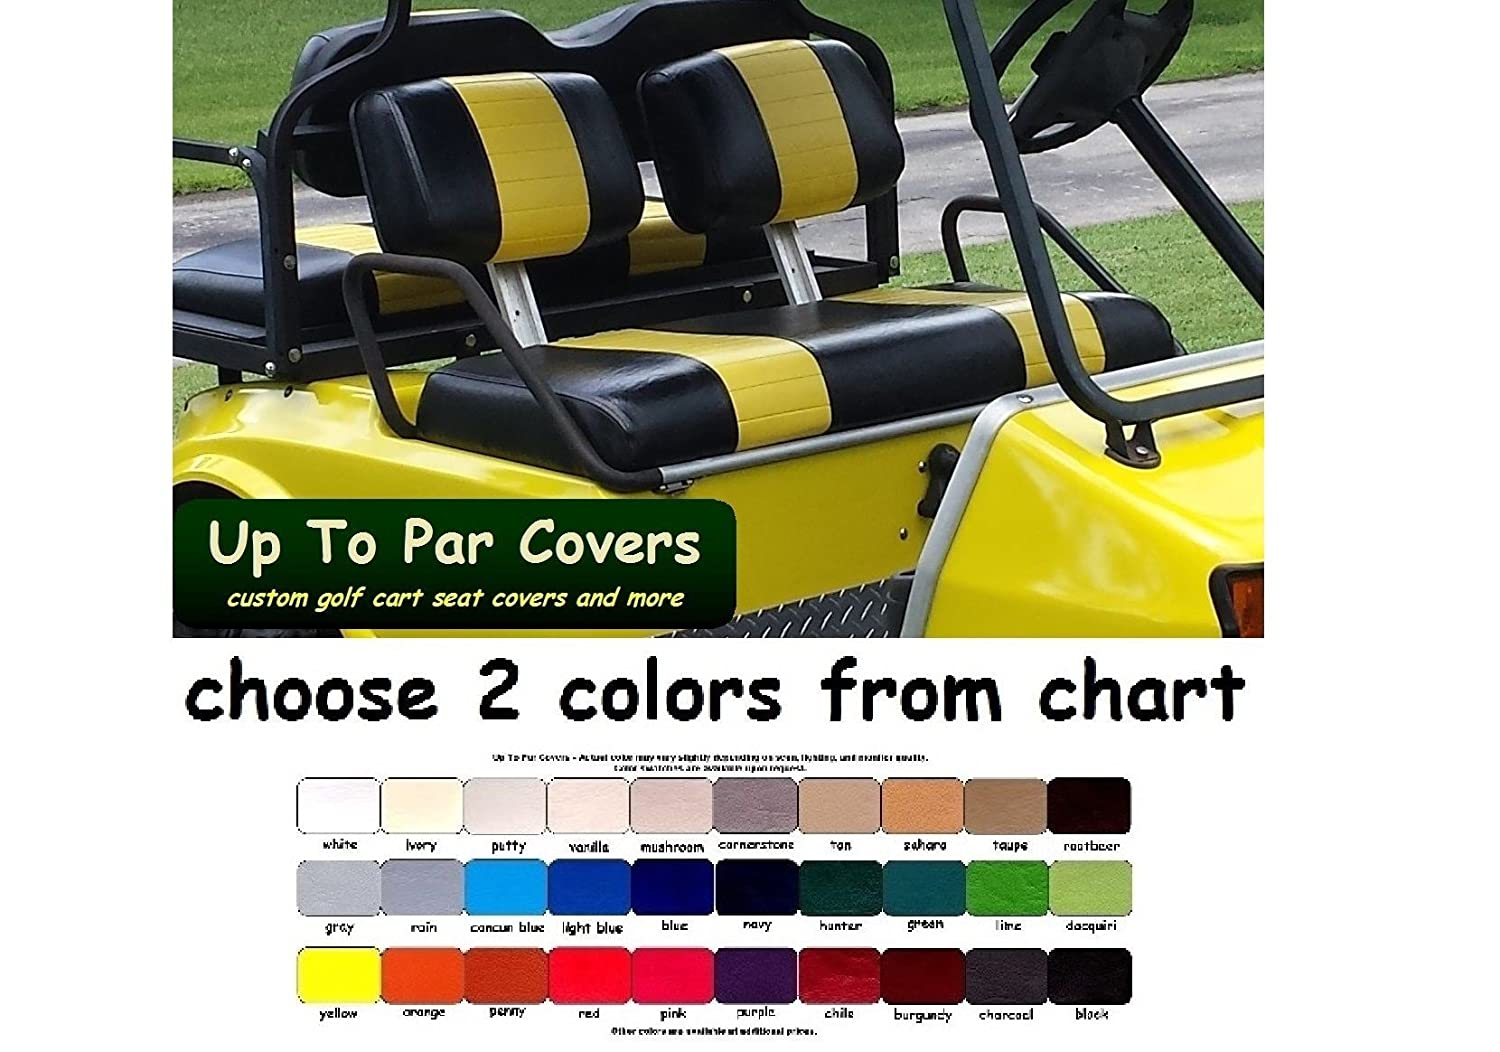 Club Car Pre-2000 DS Custom 2-Stripe Golf Cart Seat Cover Set Made with Marine Grade Vinyl - Staple On - Choose Your Colors From Our Color Chart!